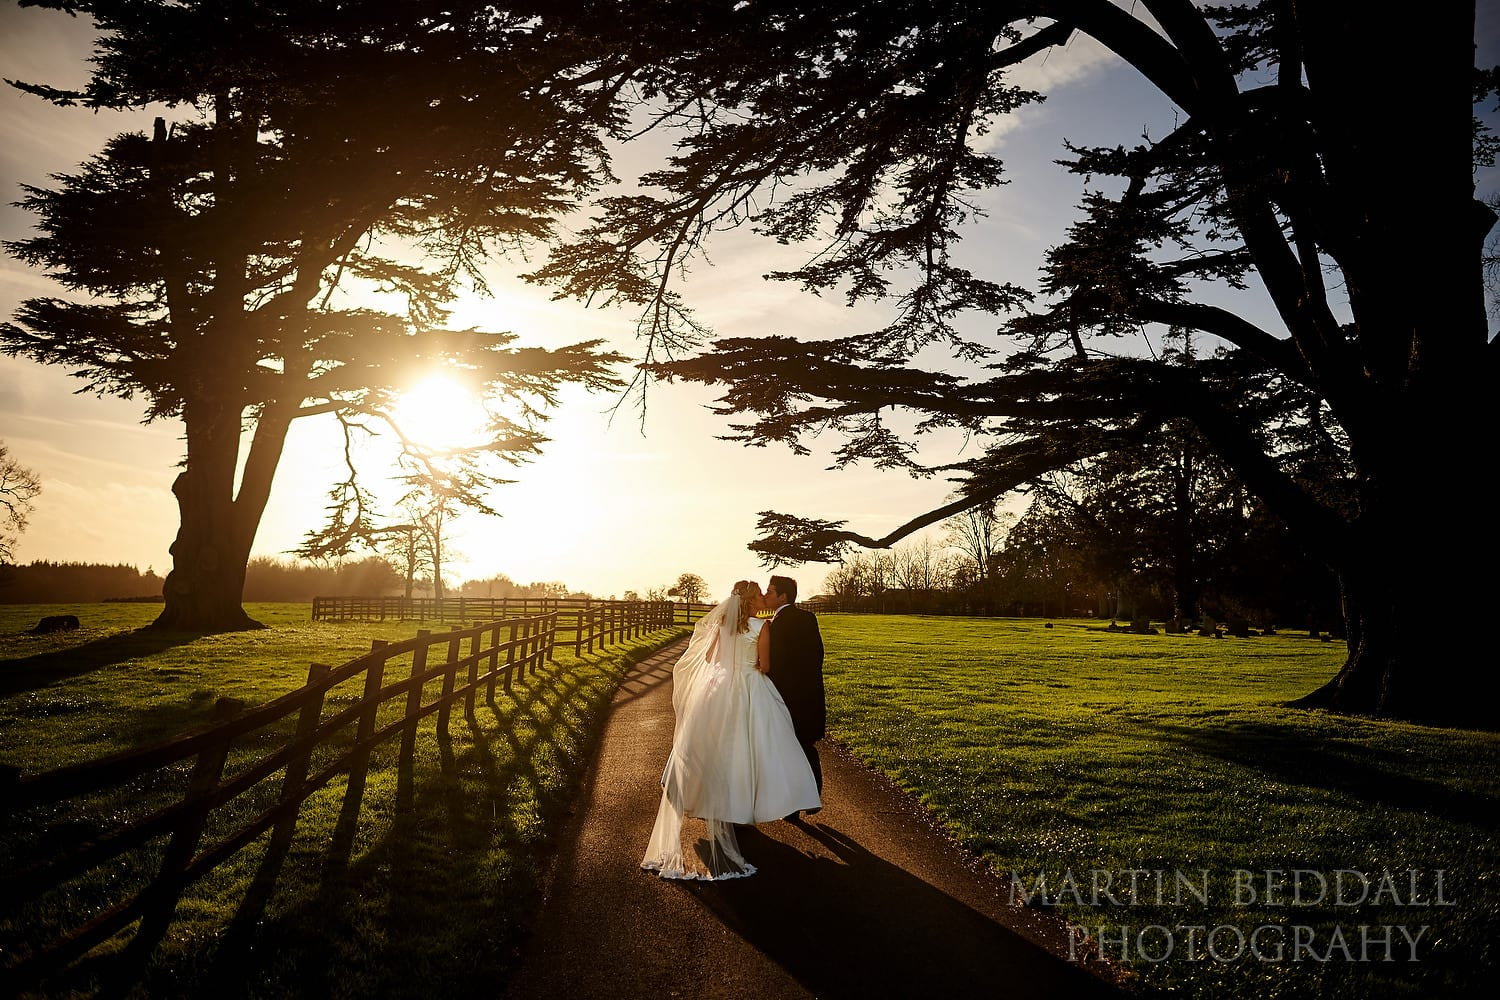 Wedding Photography in 2015